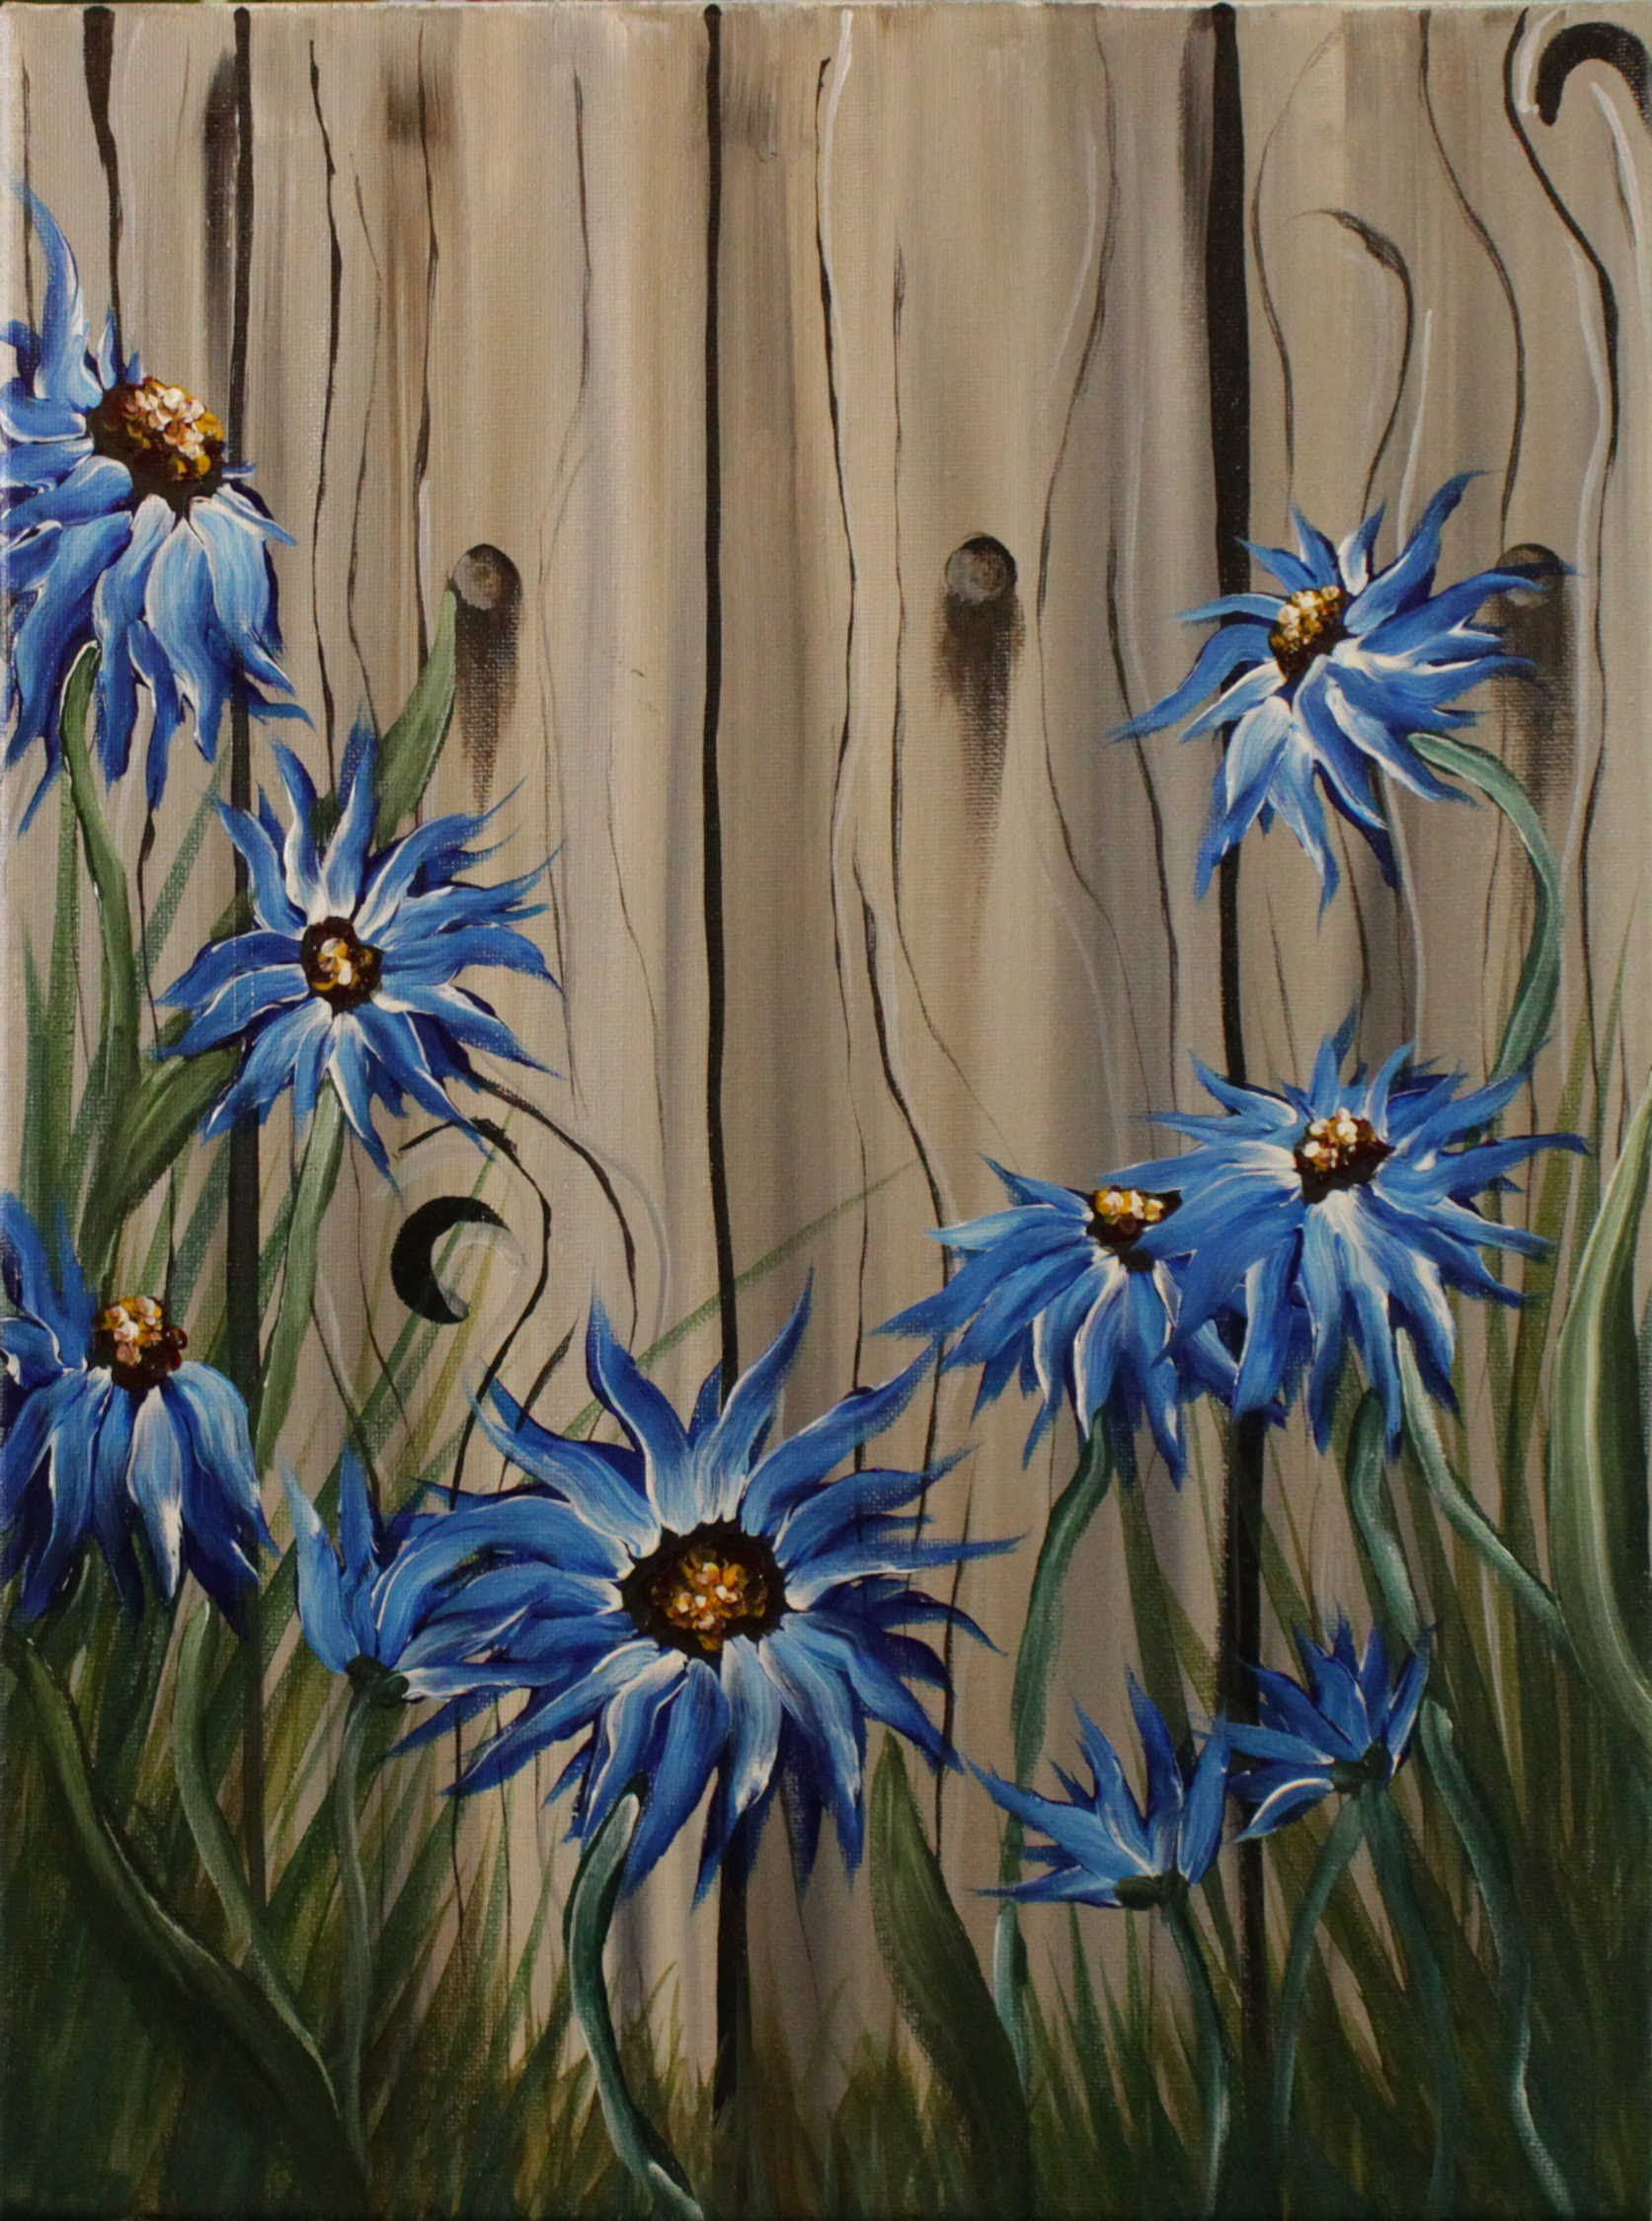 Summer Flowers On The Fence Step By Step Acrylic Painting On